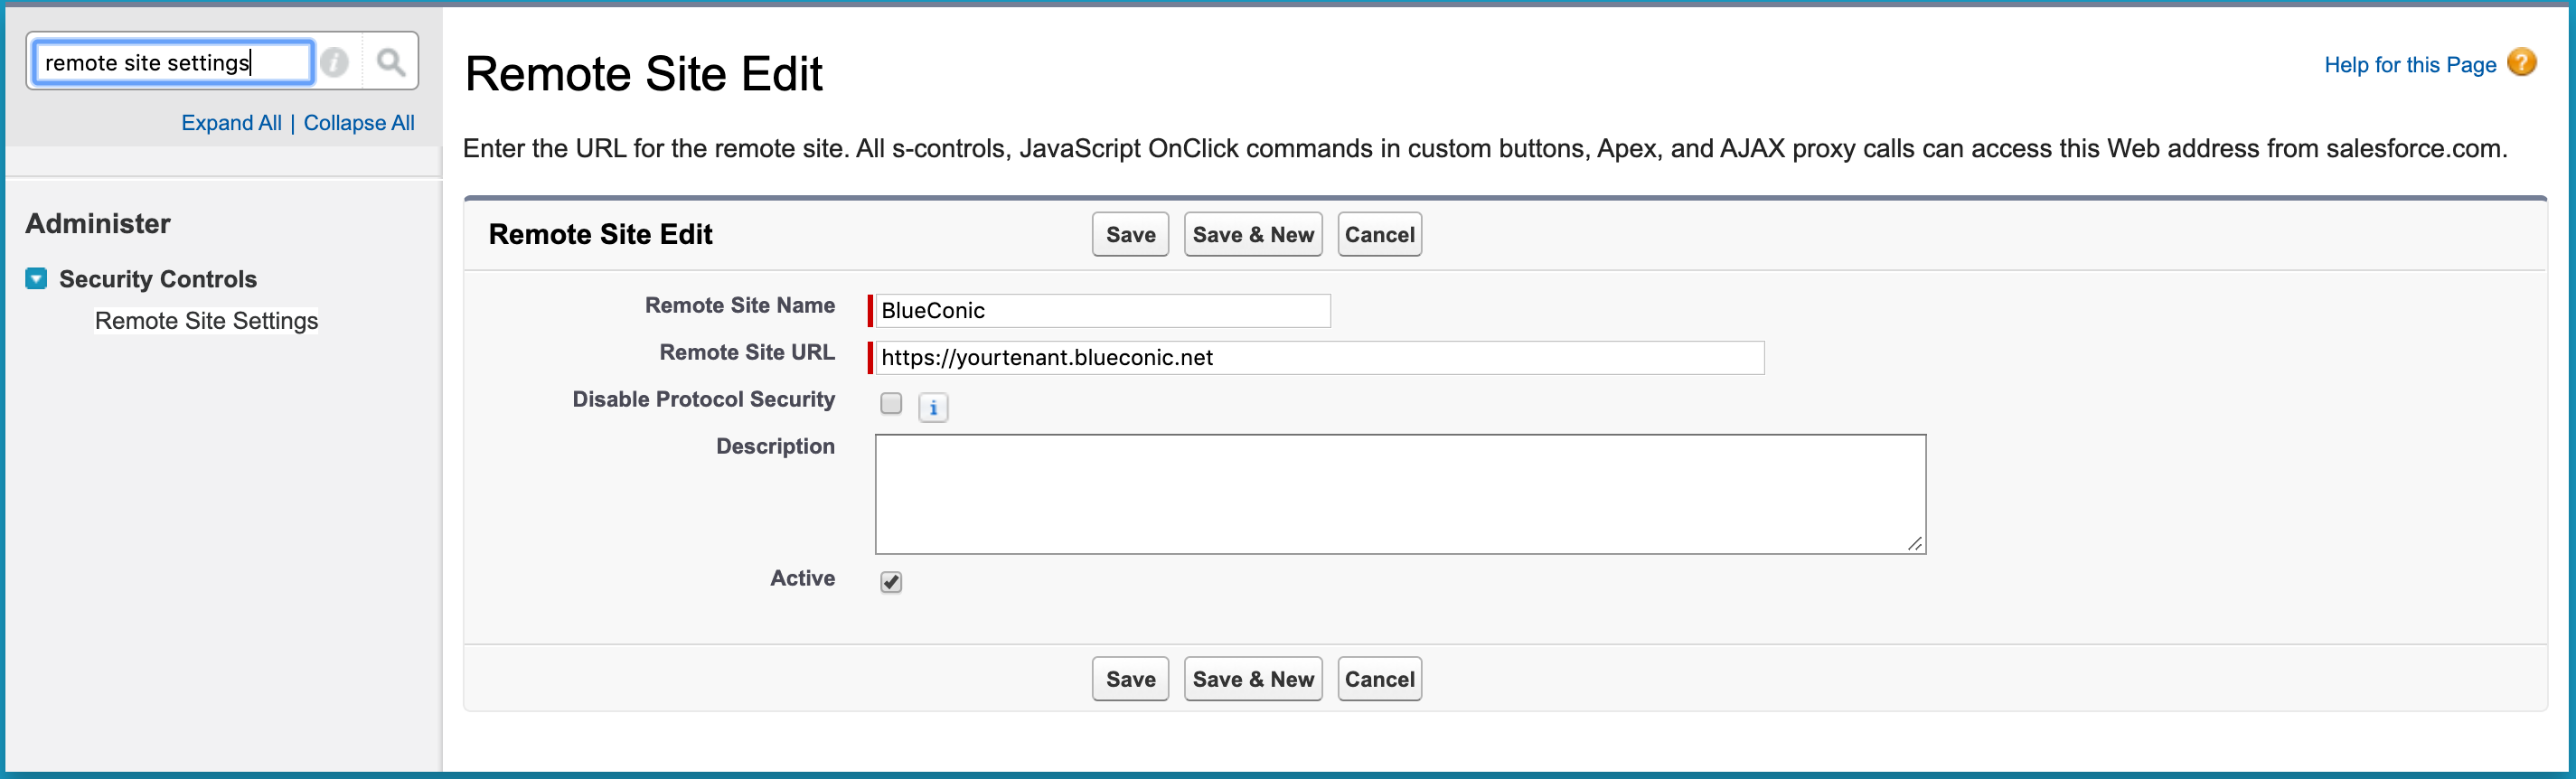 How do I create a remote site connection between Salesforce and the BlueConic customer data platform?